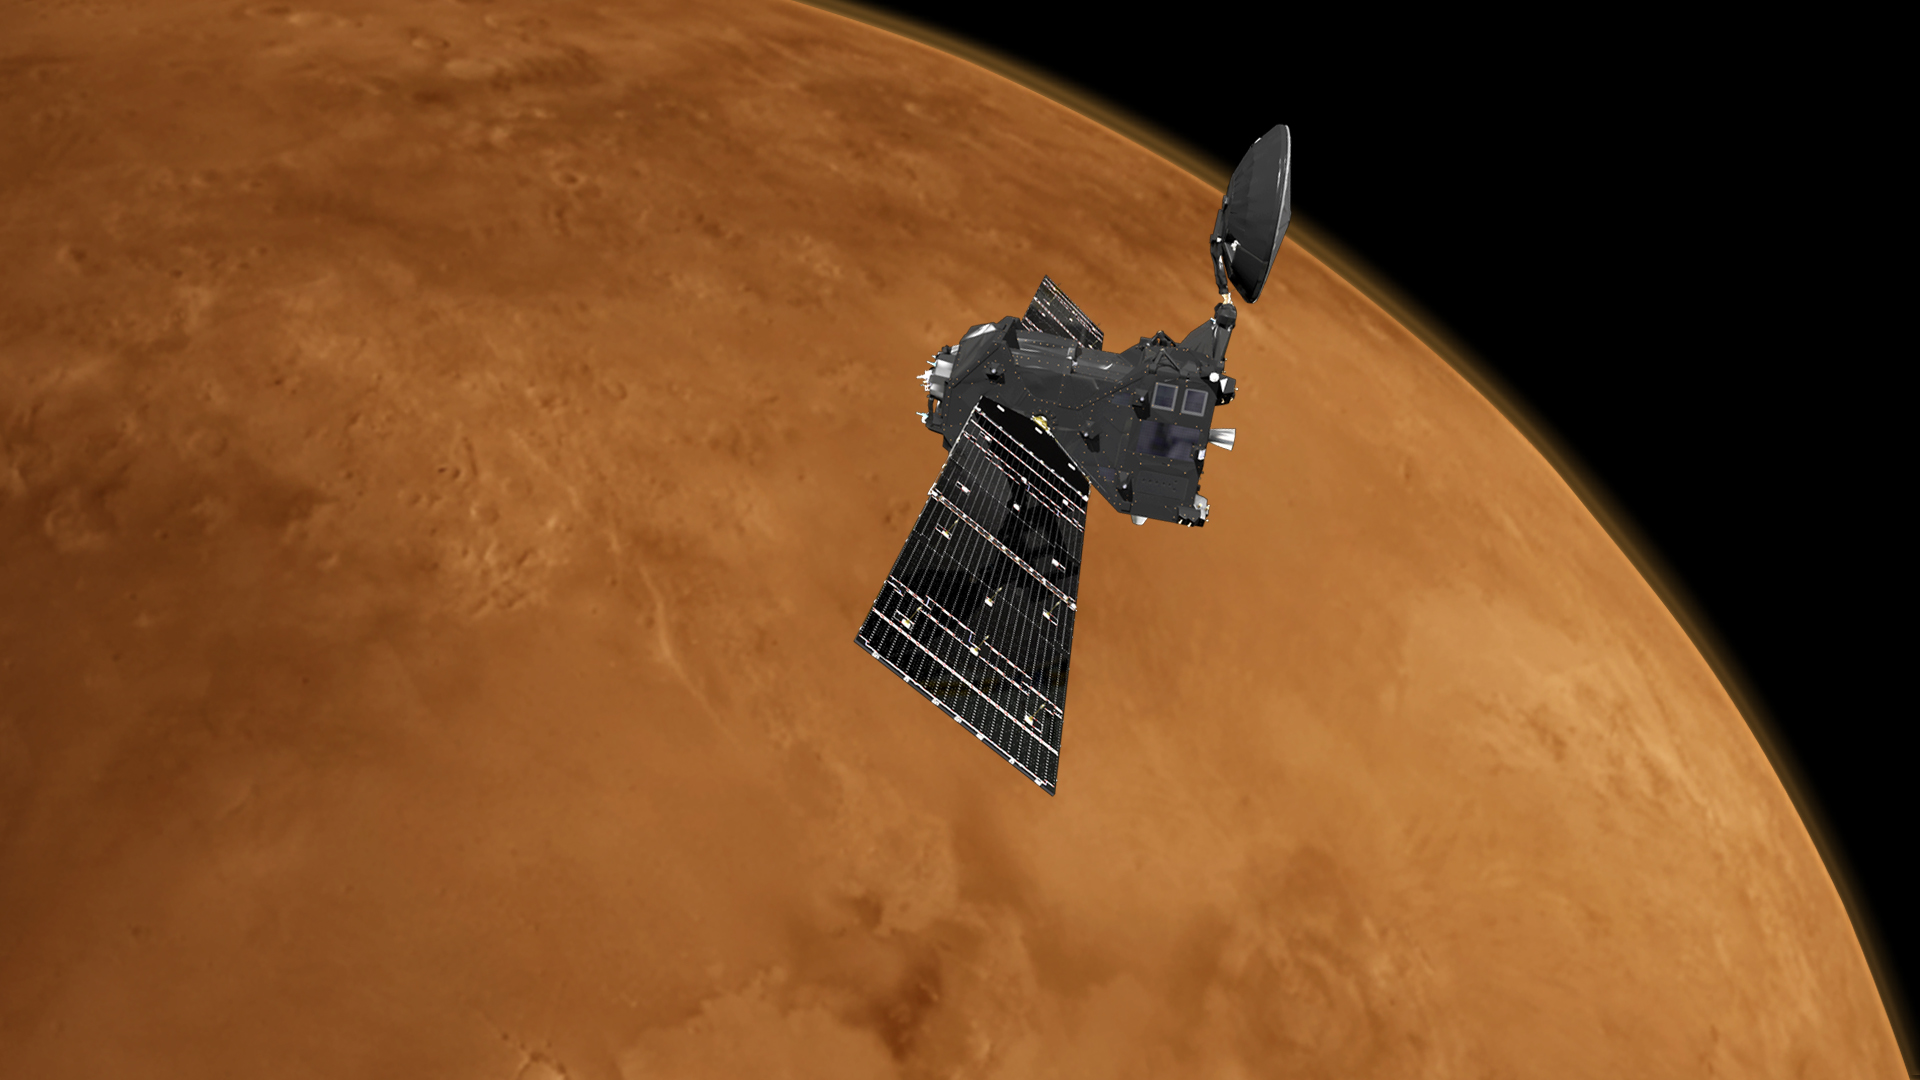 1567215202219-ExoMars2016_TGO_Cruise_In_Orbit_20150625.jpg